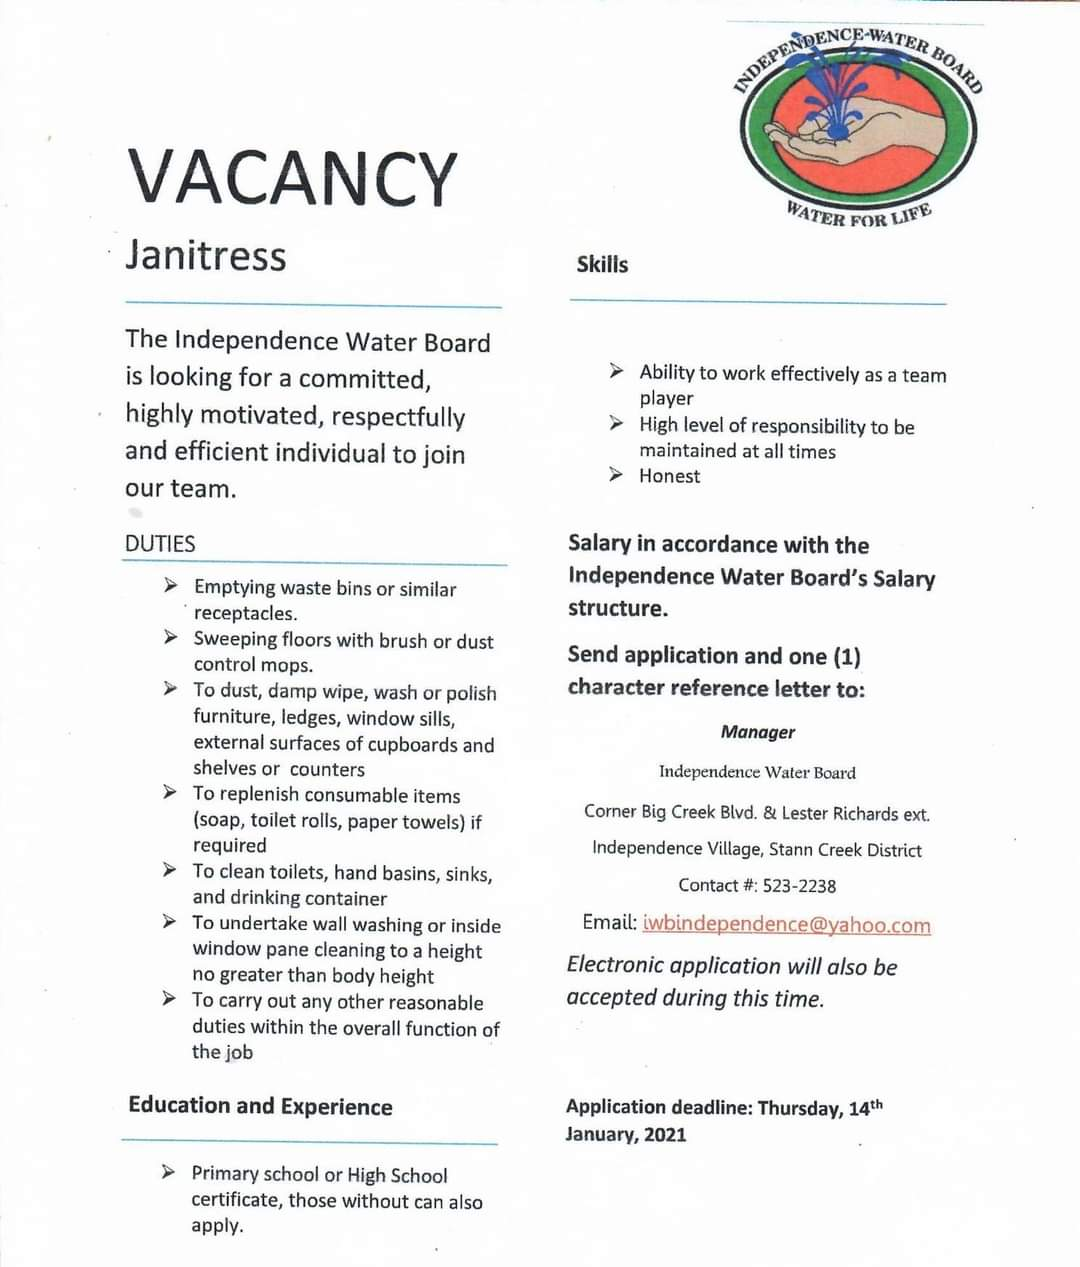 Hiring: Janitress in Independence, Belize